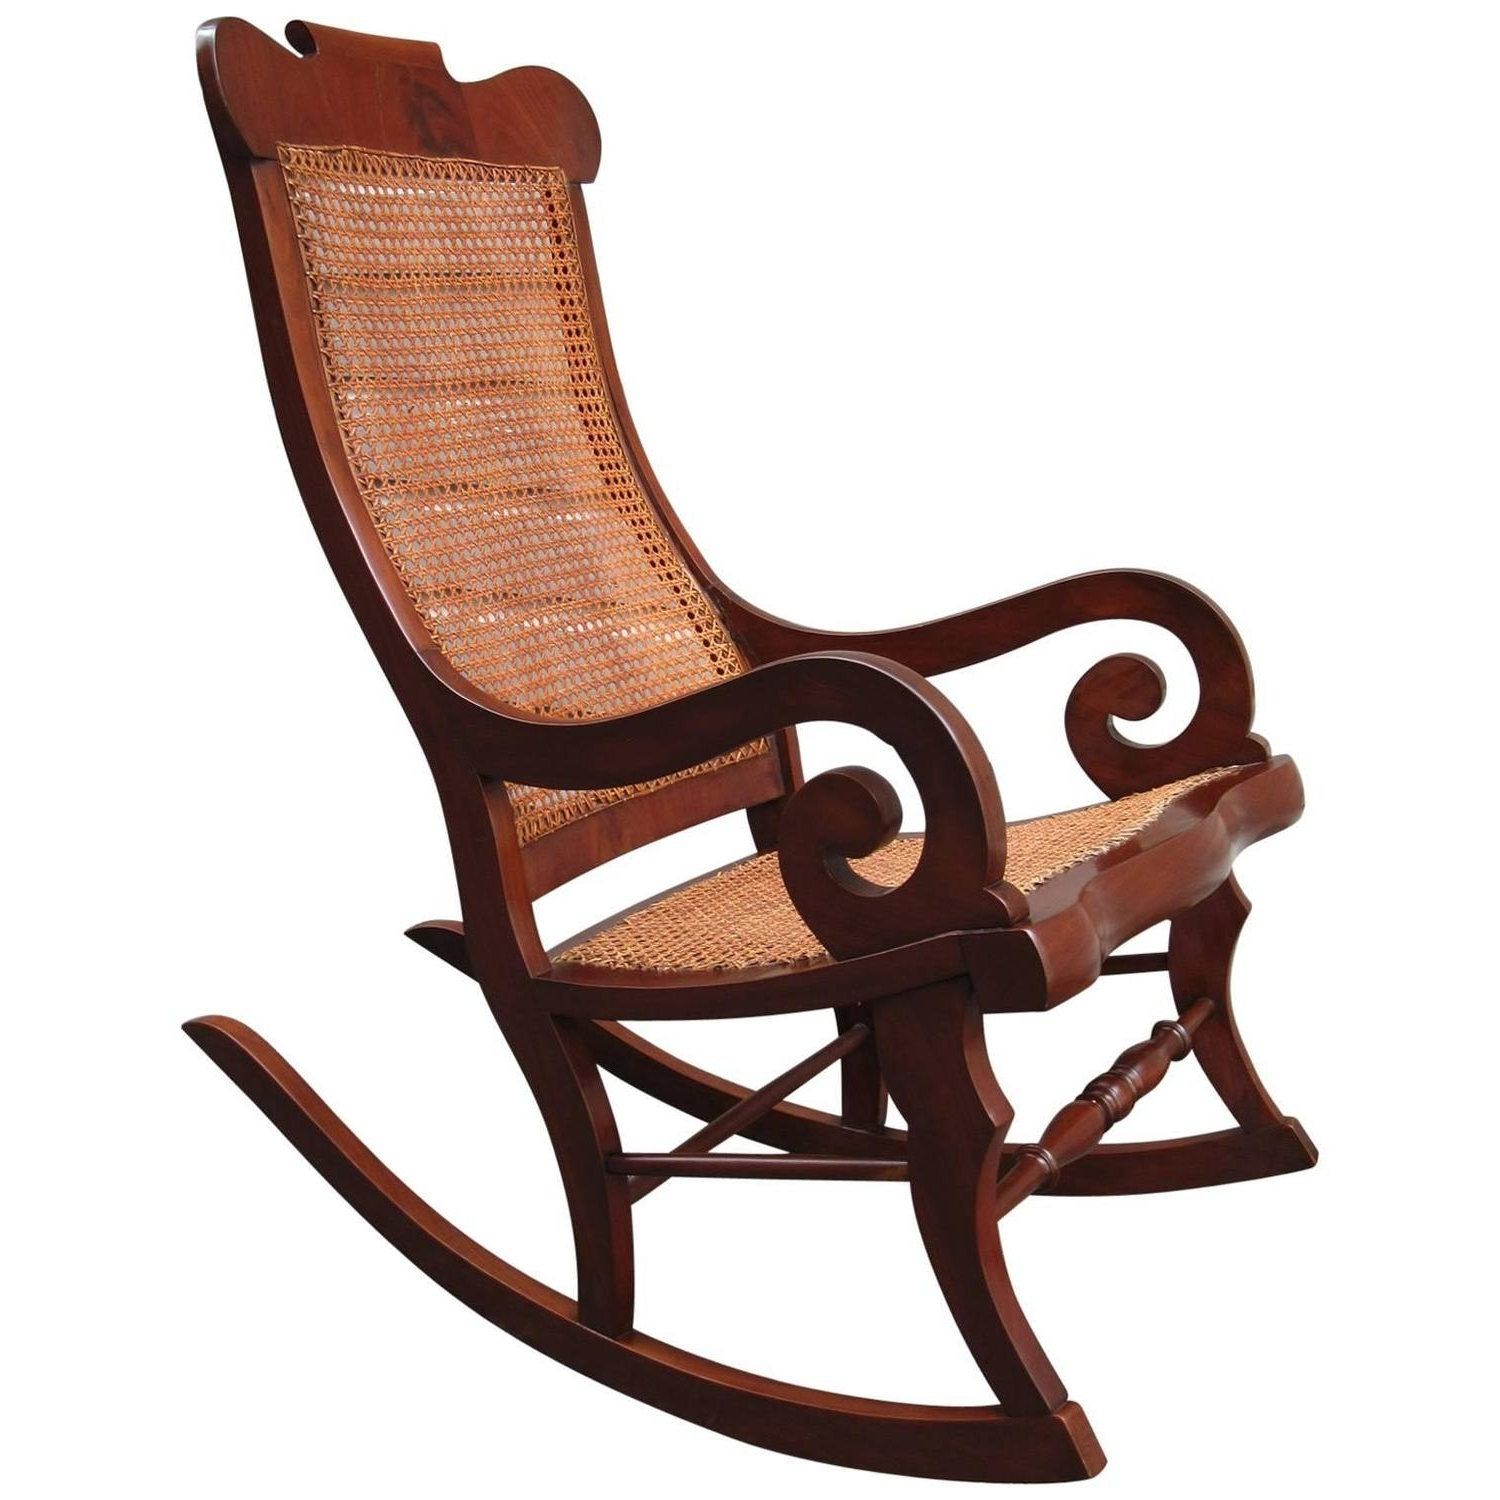 Well Liked 19Th Century Rocking Chairs – 82 For Sale At 1Stdibs Regarding Old Fashioned Rocking Chairs (View 12 of 15)